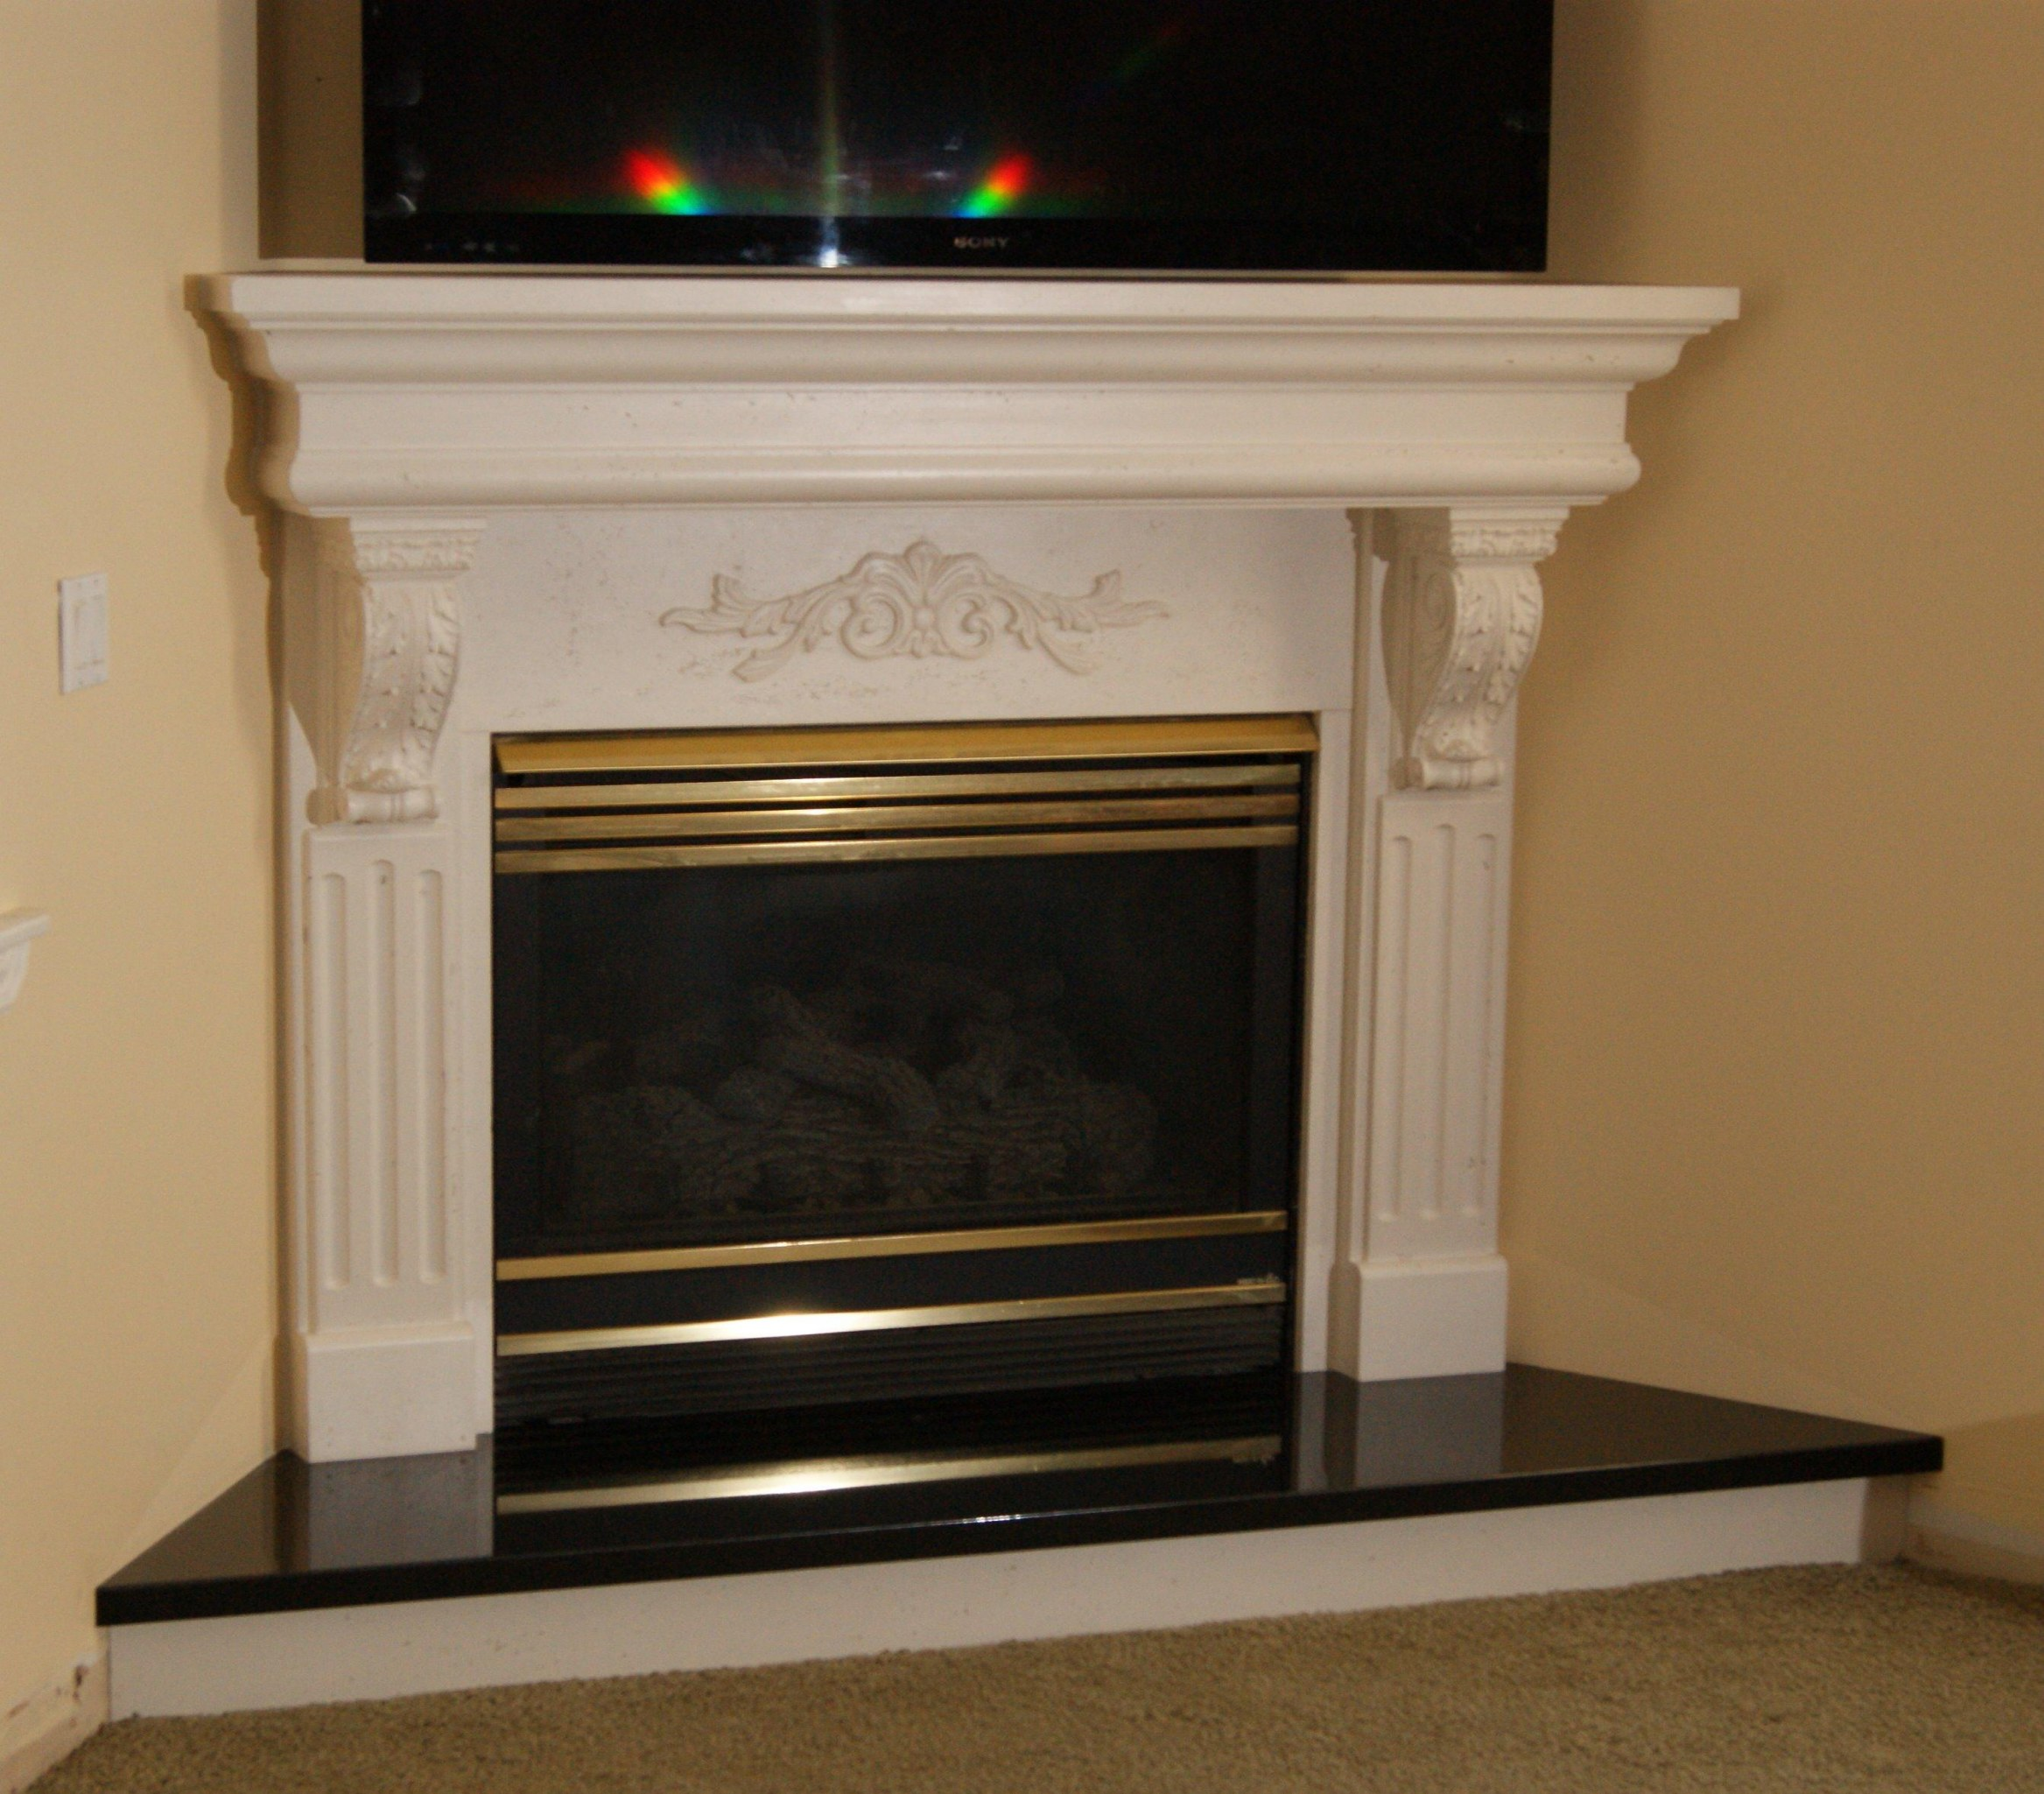 fireplace mantel shelf fireplace mantels st george utah fireplace design ideas of fireplace mantel shelf